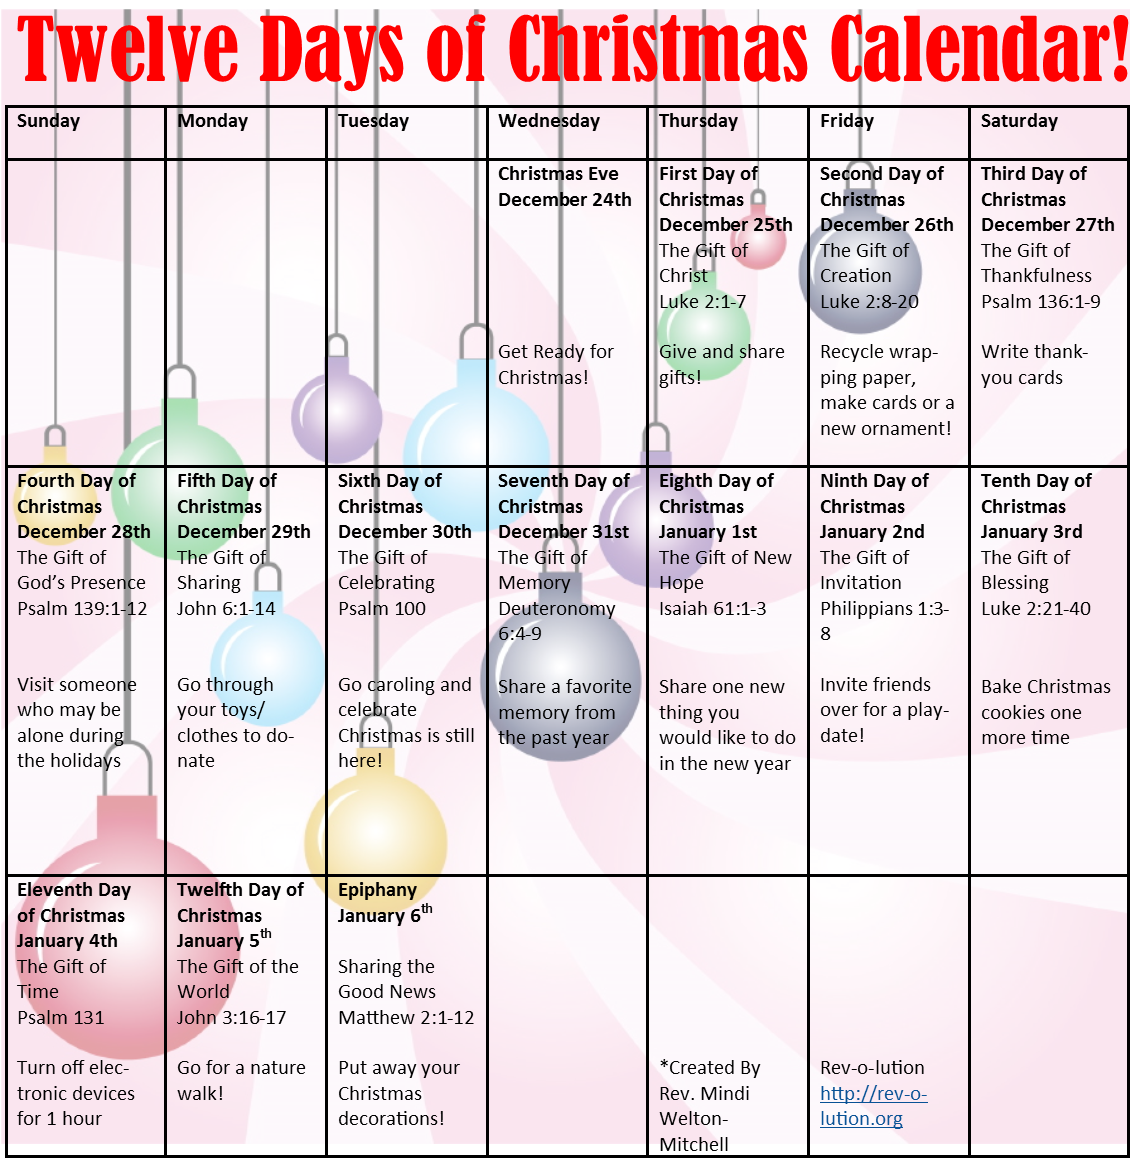 12 Days Of Christmas Calendar | Christmas Printable Intended For 12 Days Of Christmas Calendar